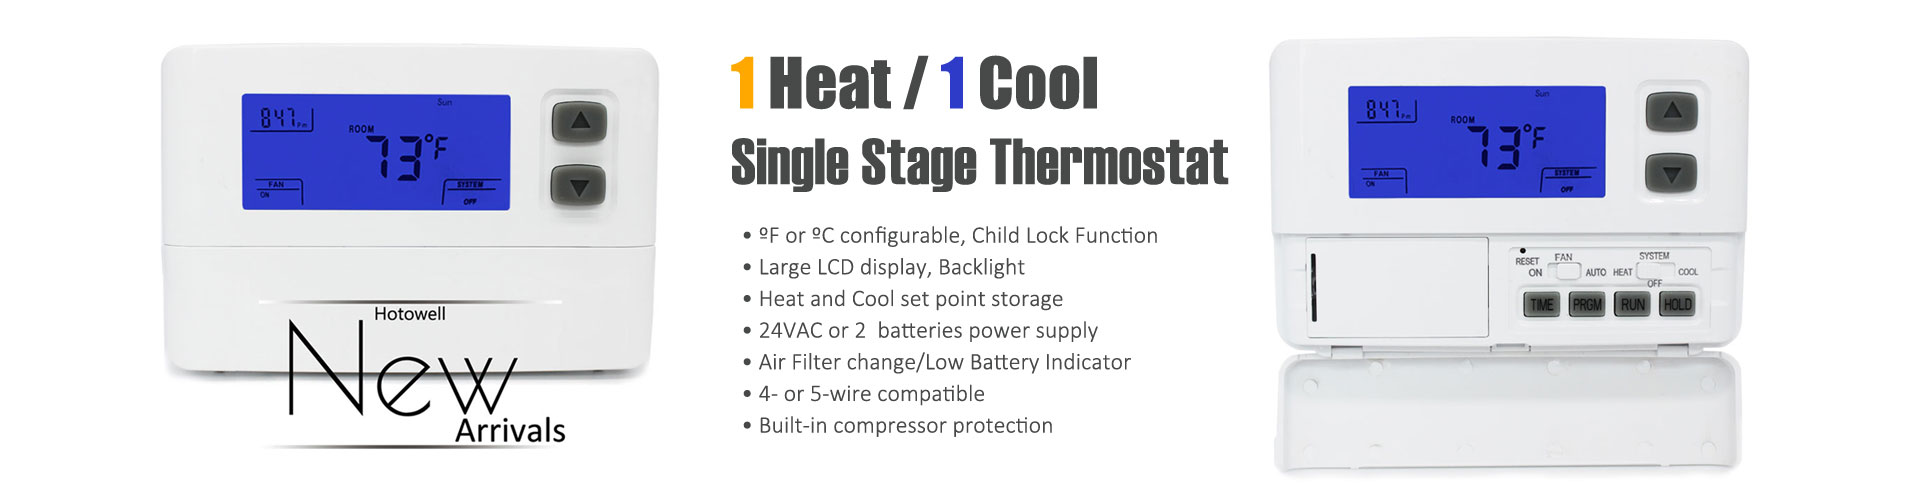 Hotowell heat pump thermostat